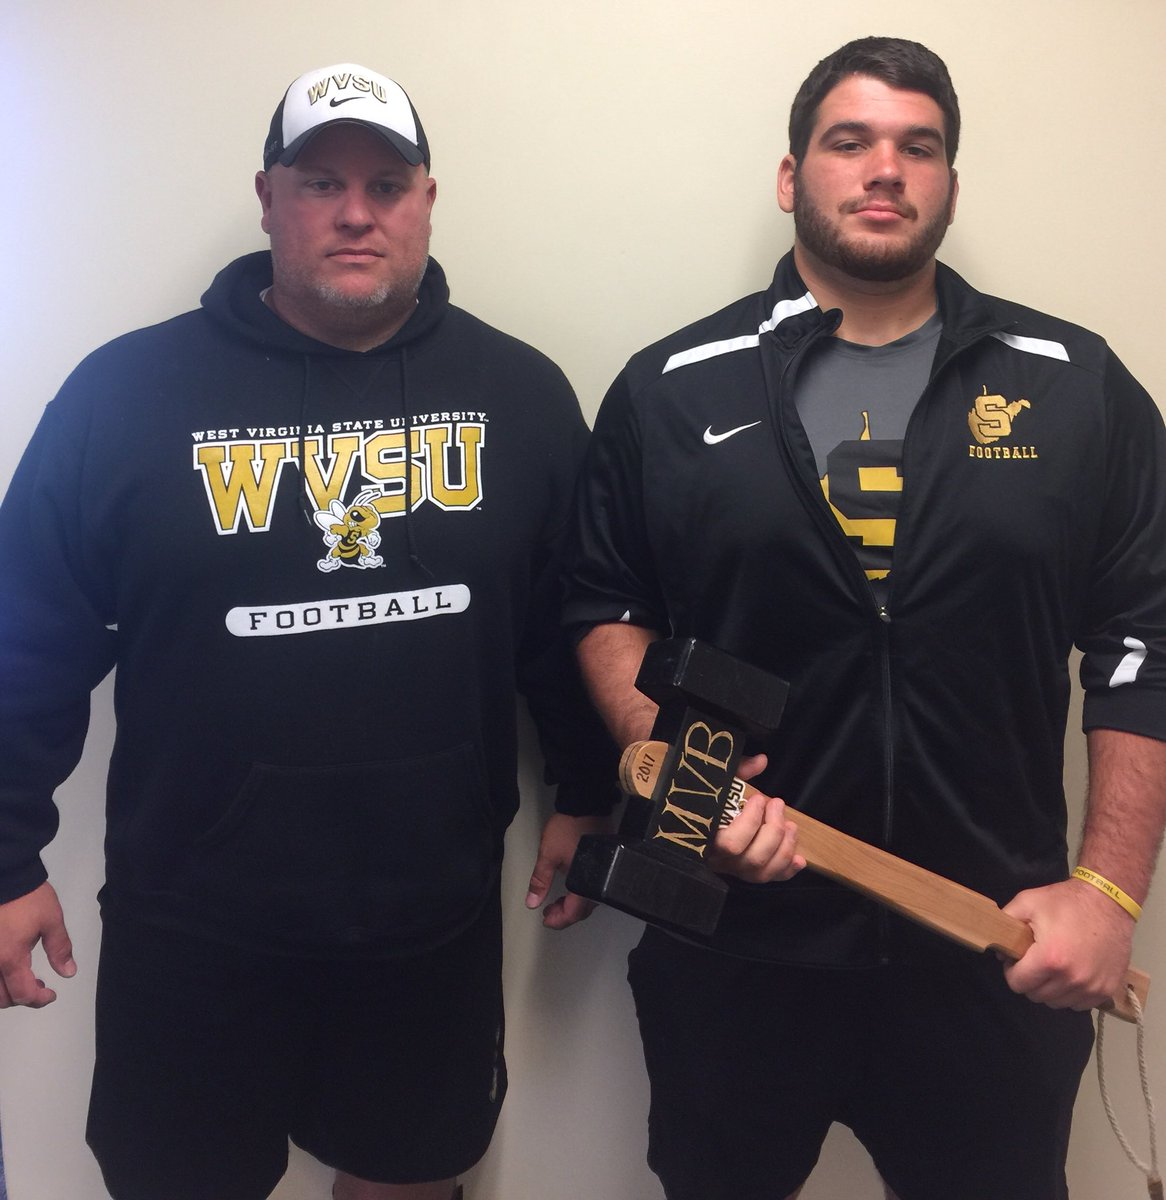 Congrats to Devon Bradshaw @dbrad_72 for being selected First Team All-Mountain East Conference Center. #TCB #FOOT~PHI @WVStateFB<br>http://pic.twitter.com/tQA0giAplg